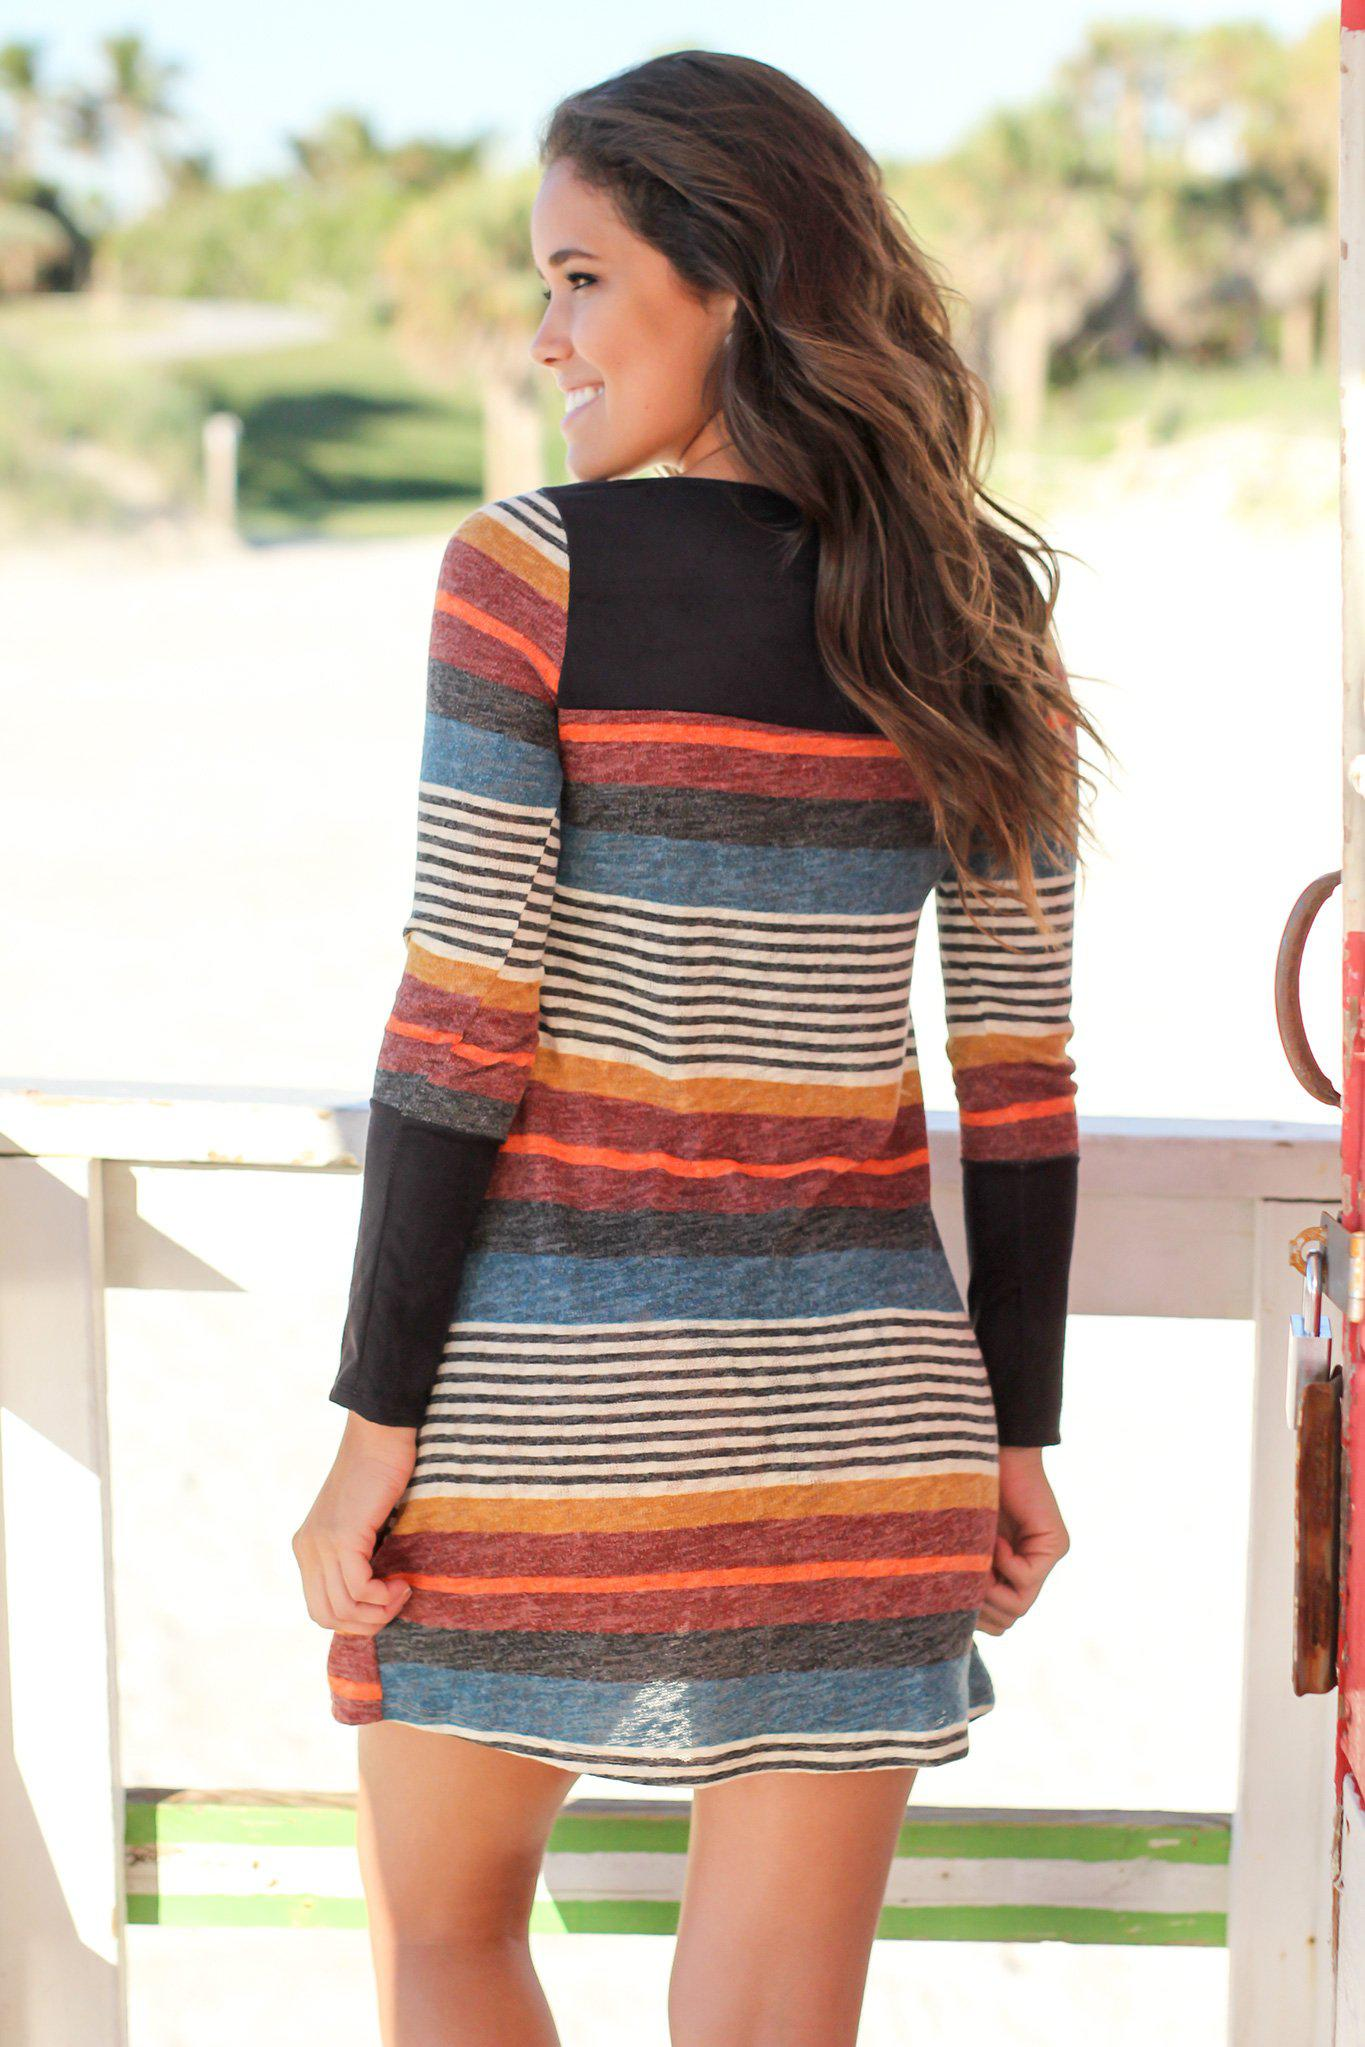 Multi Colored Striped Short Dress with Black Suede Detail